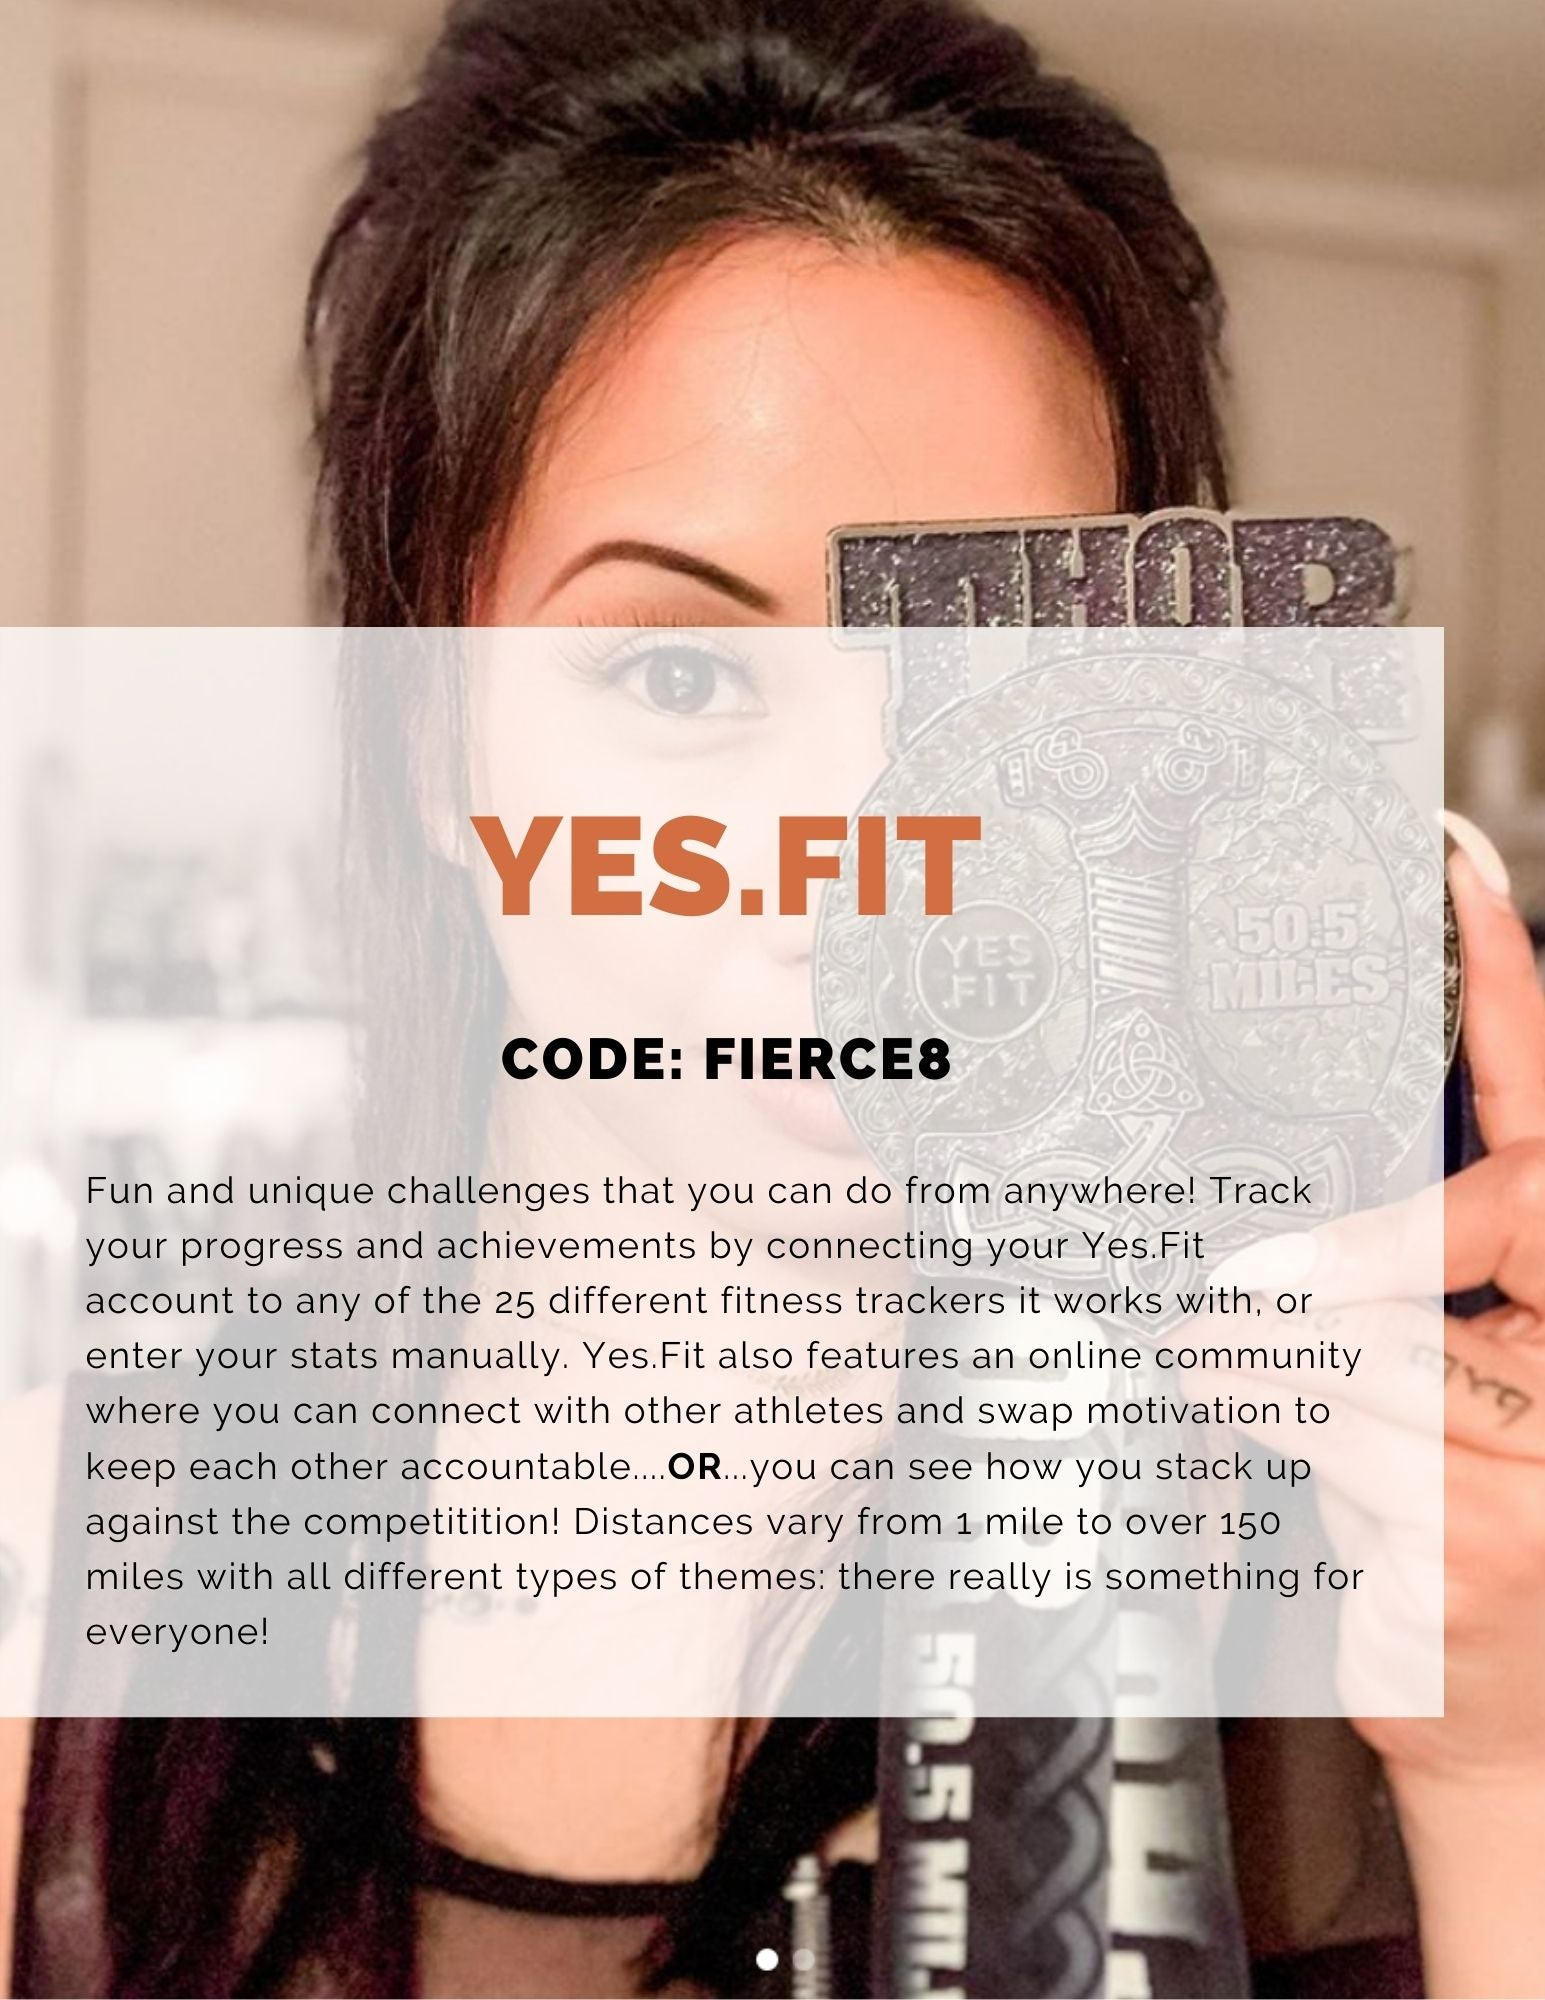 Yes.Fit online virtual races and challenges